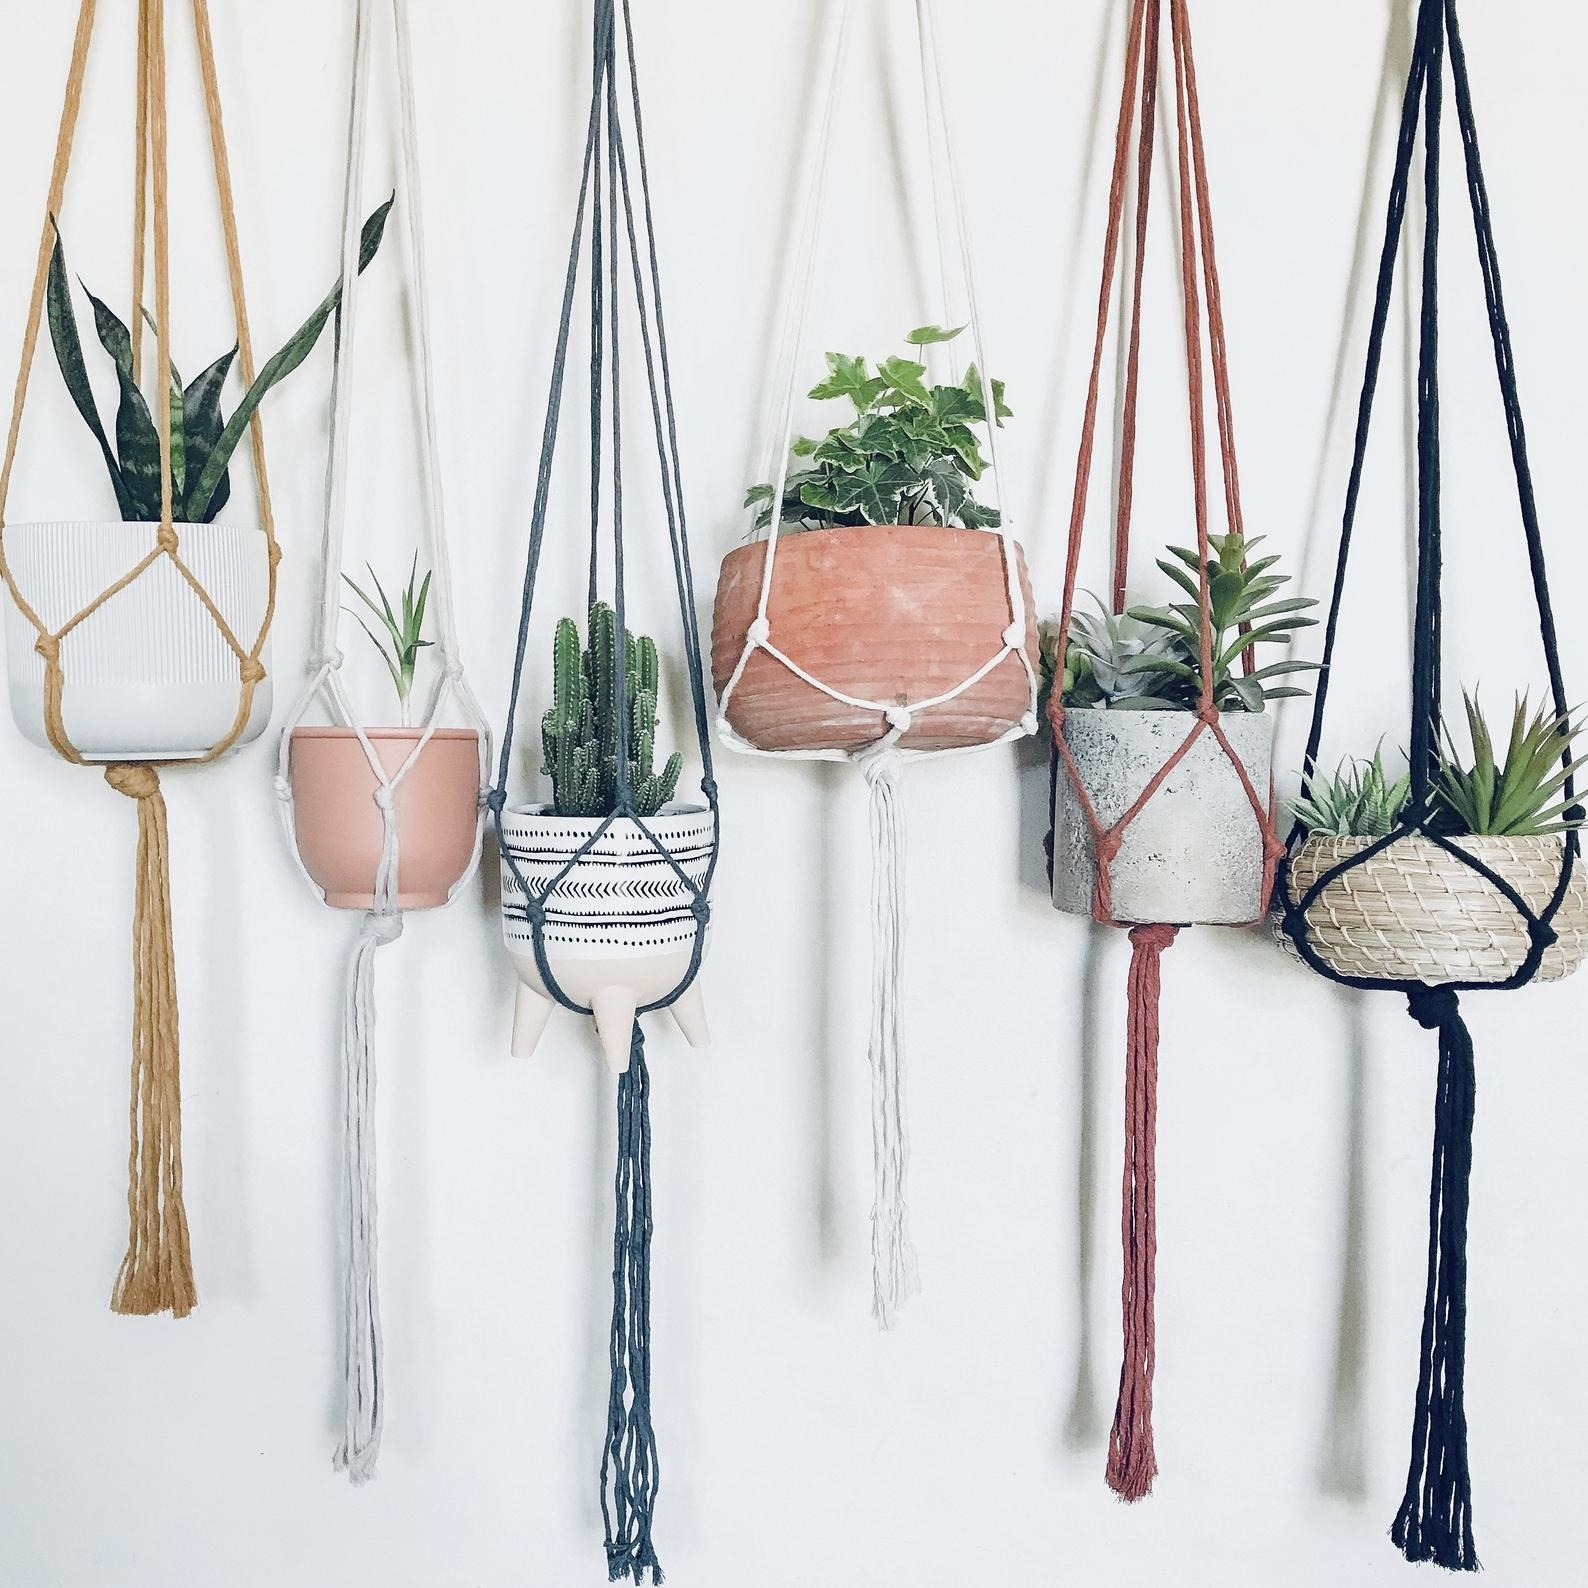 Six macrame hangers in different colors holding planters of different sizes